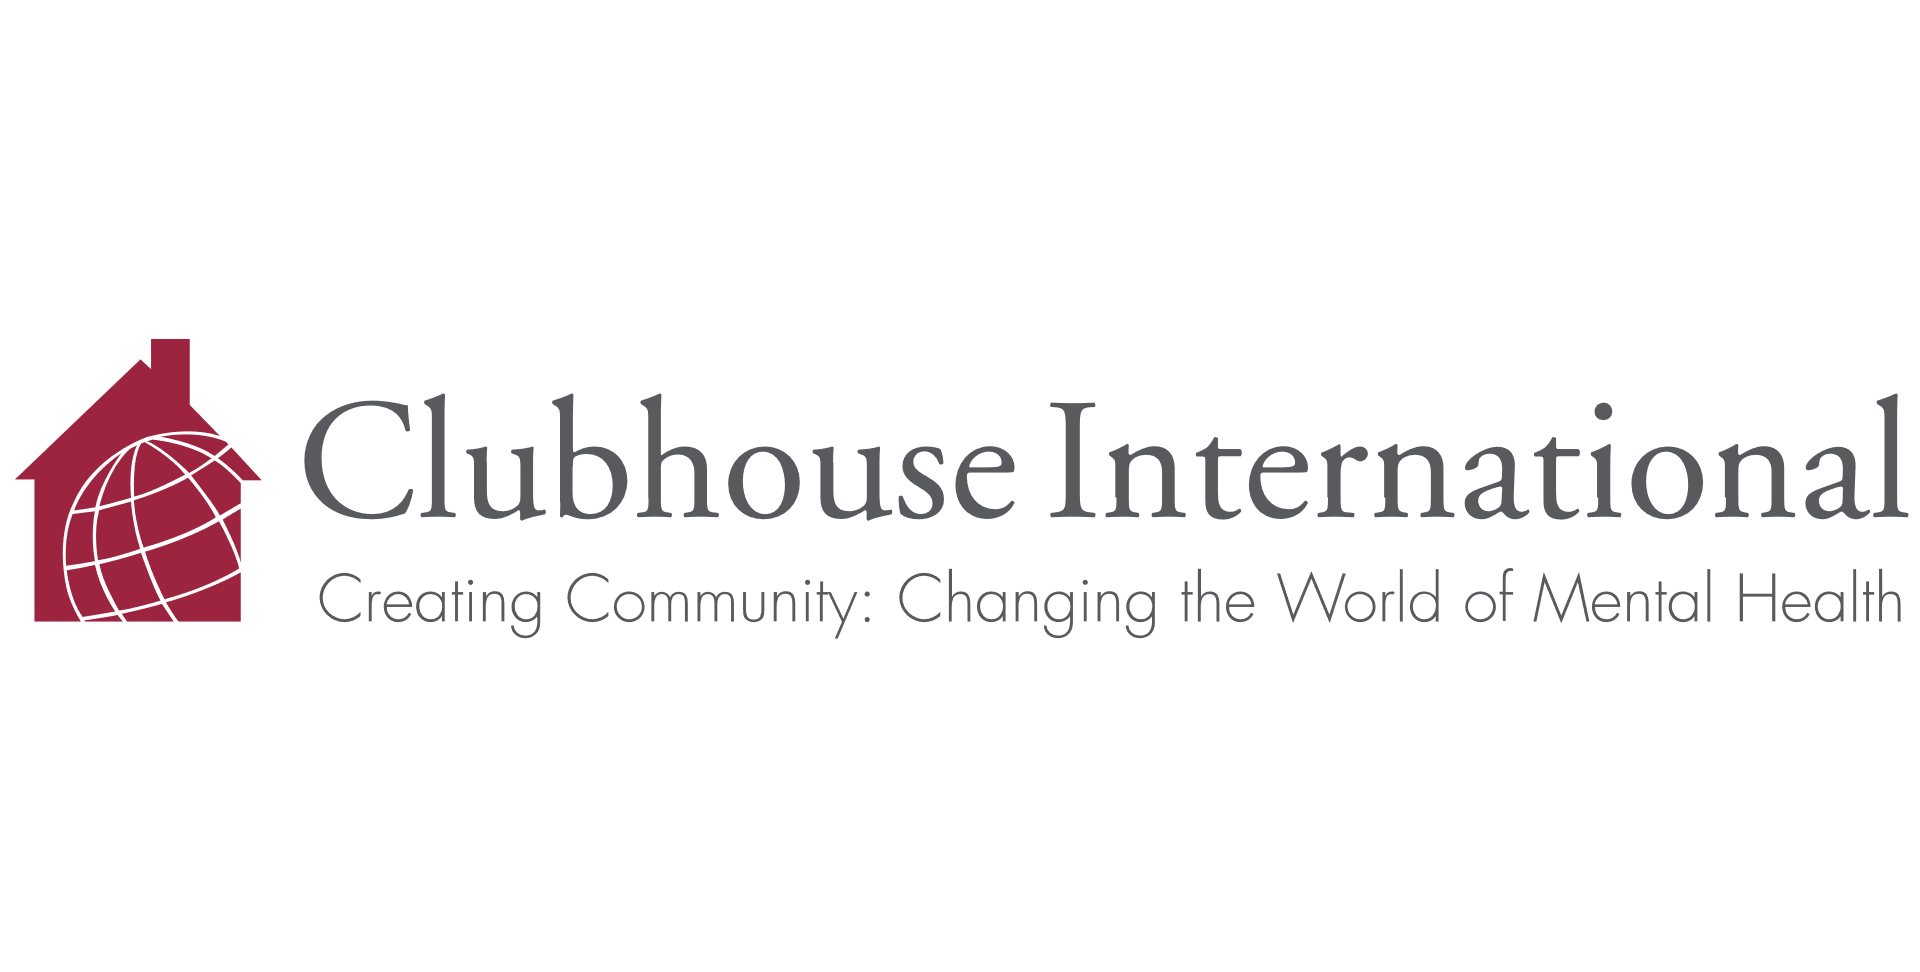 Clubhouse Internationalin logo